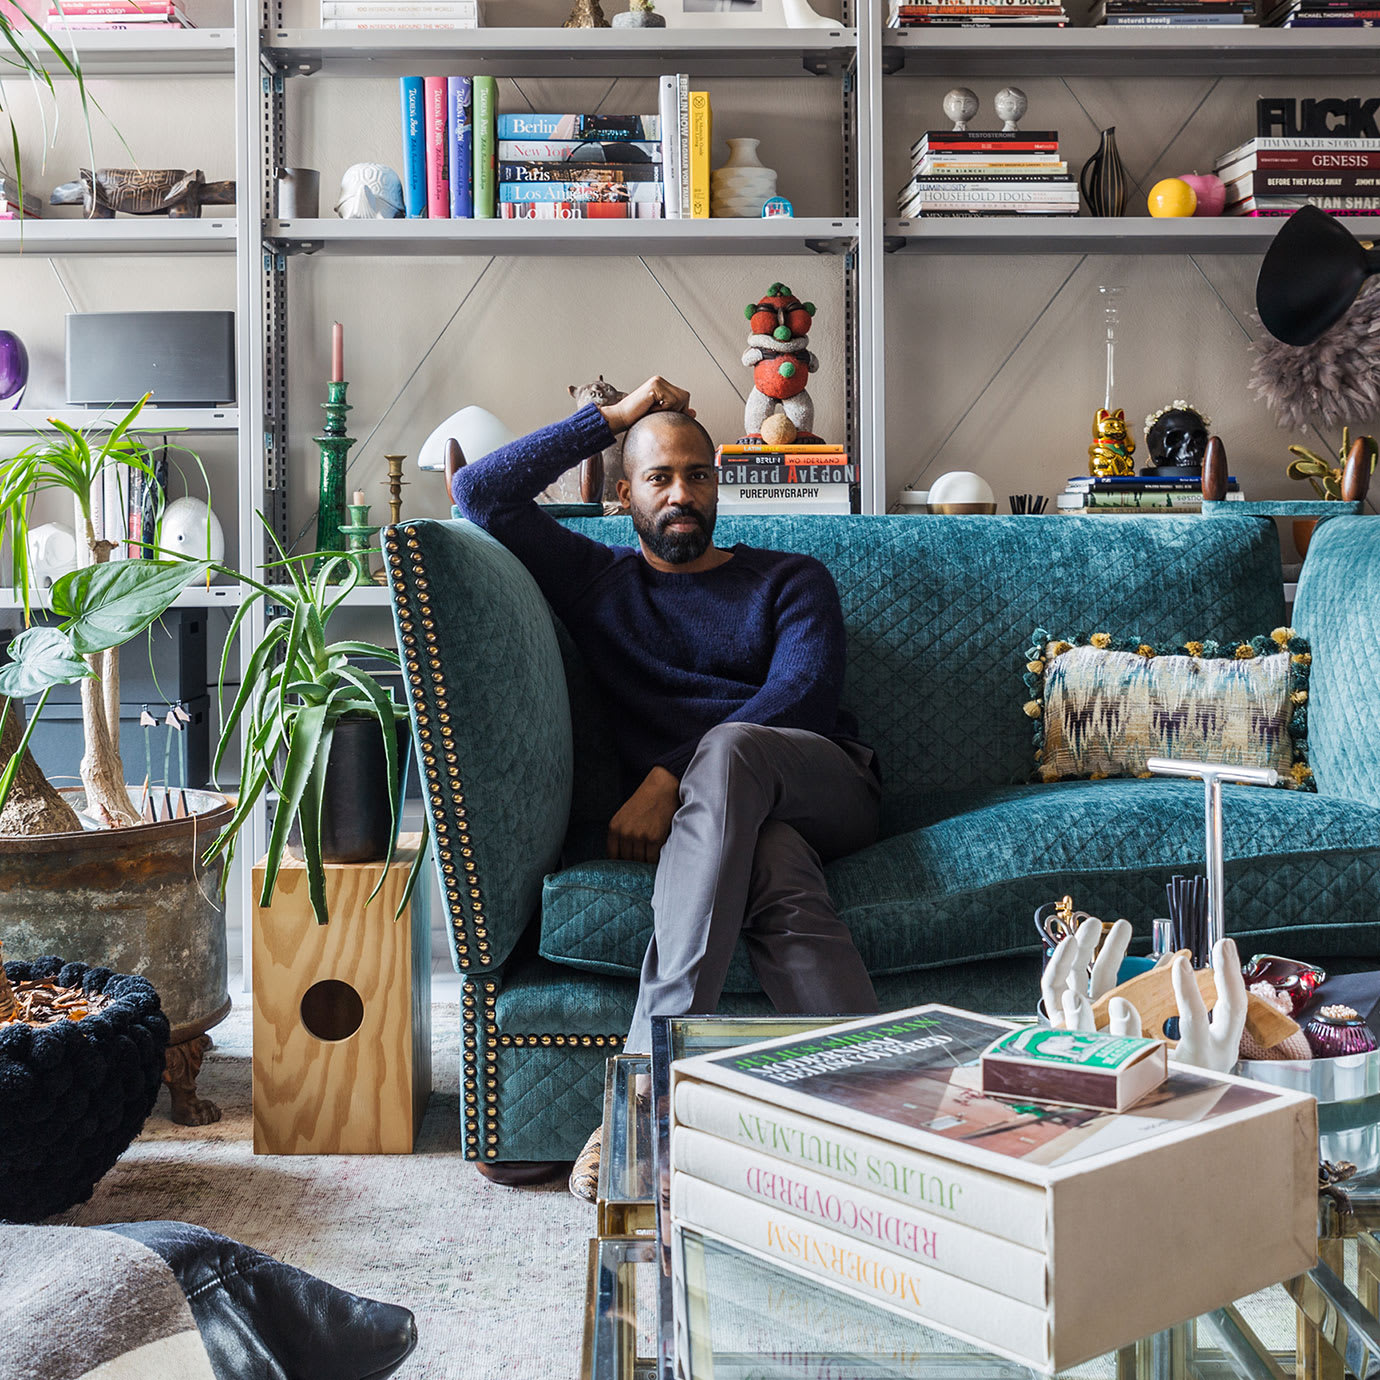 A man sitting on a blue sofa in an apartment full of decorative items.